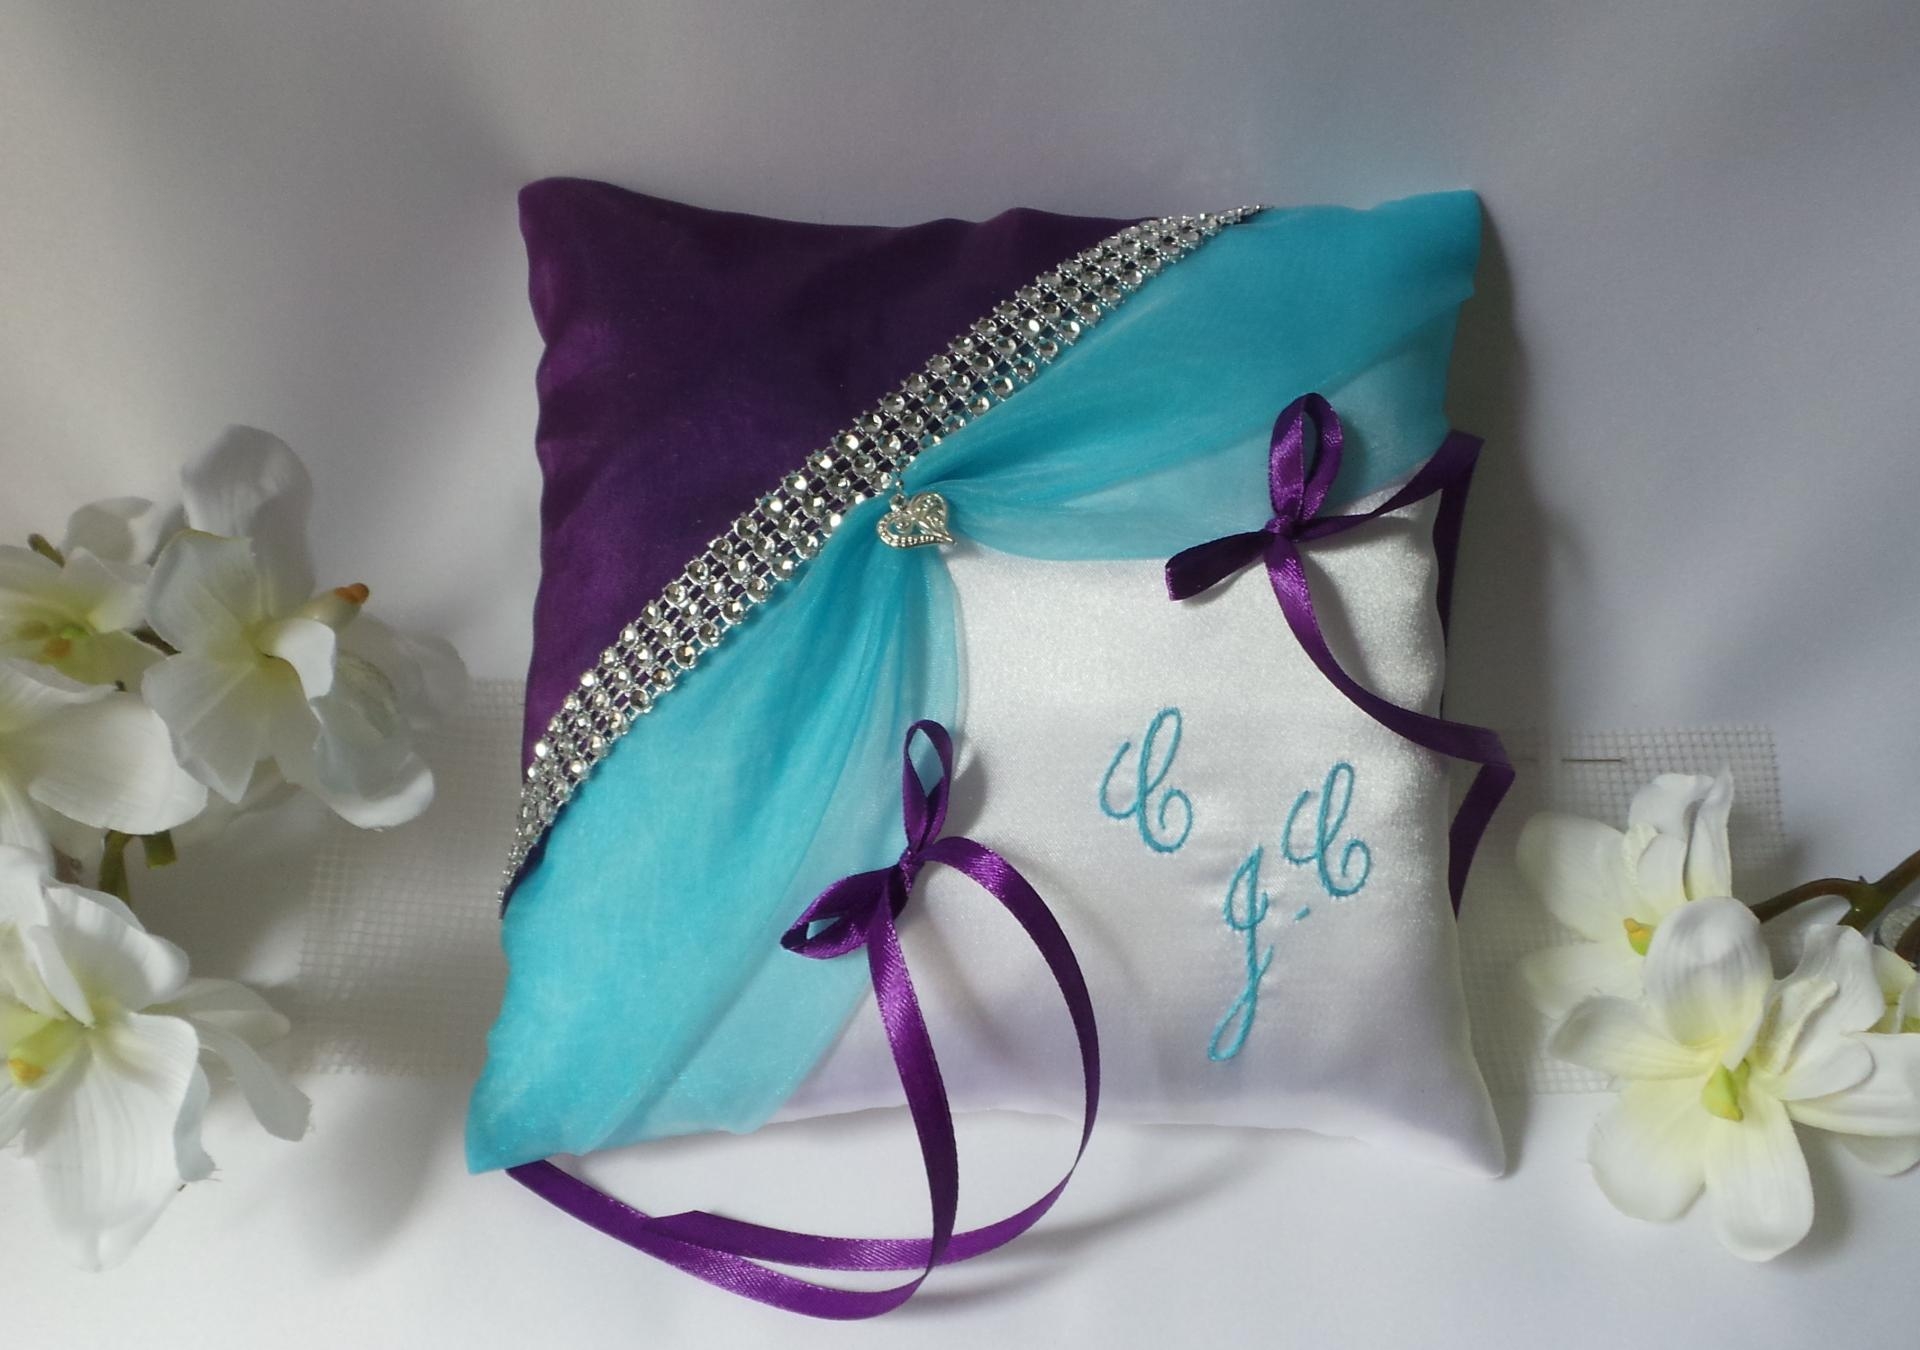 Coussin mariage violet turquoise strass 1 1